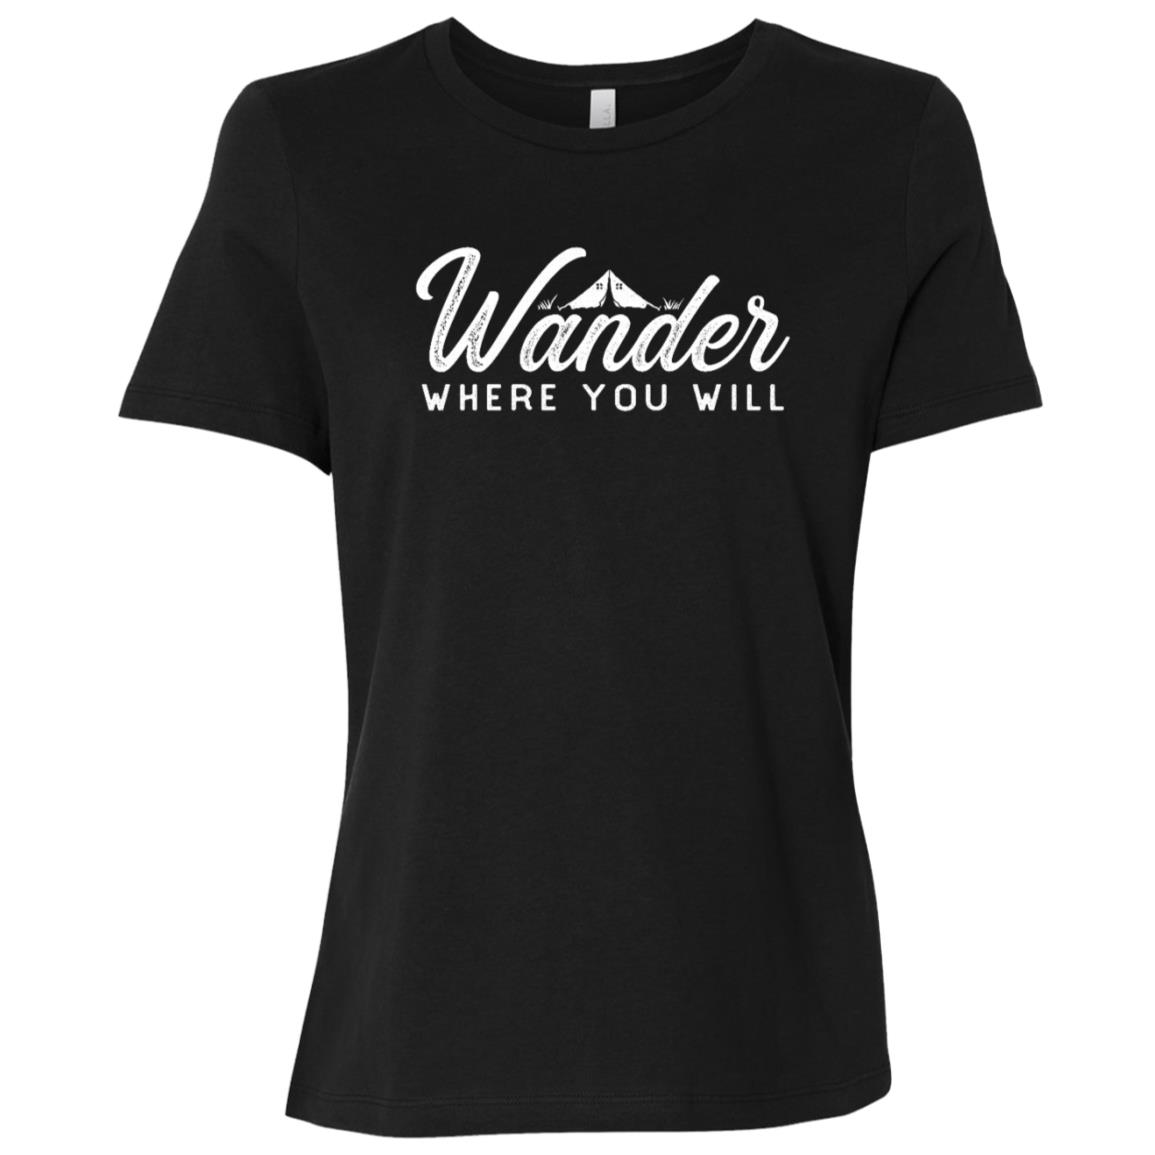 Wander Where You Will – Distressed Camping Tee Women Short Sleeve T-Shirt